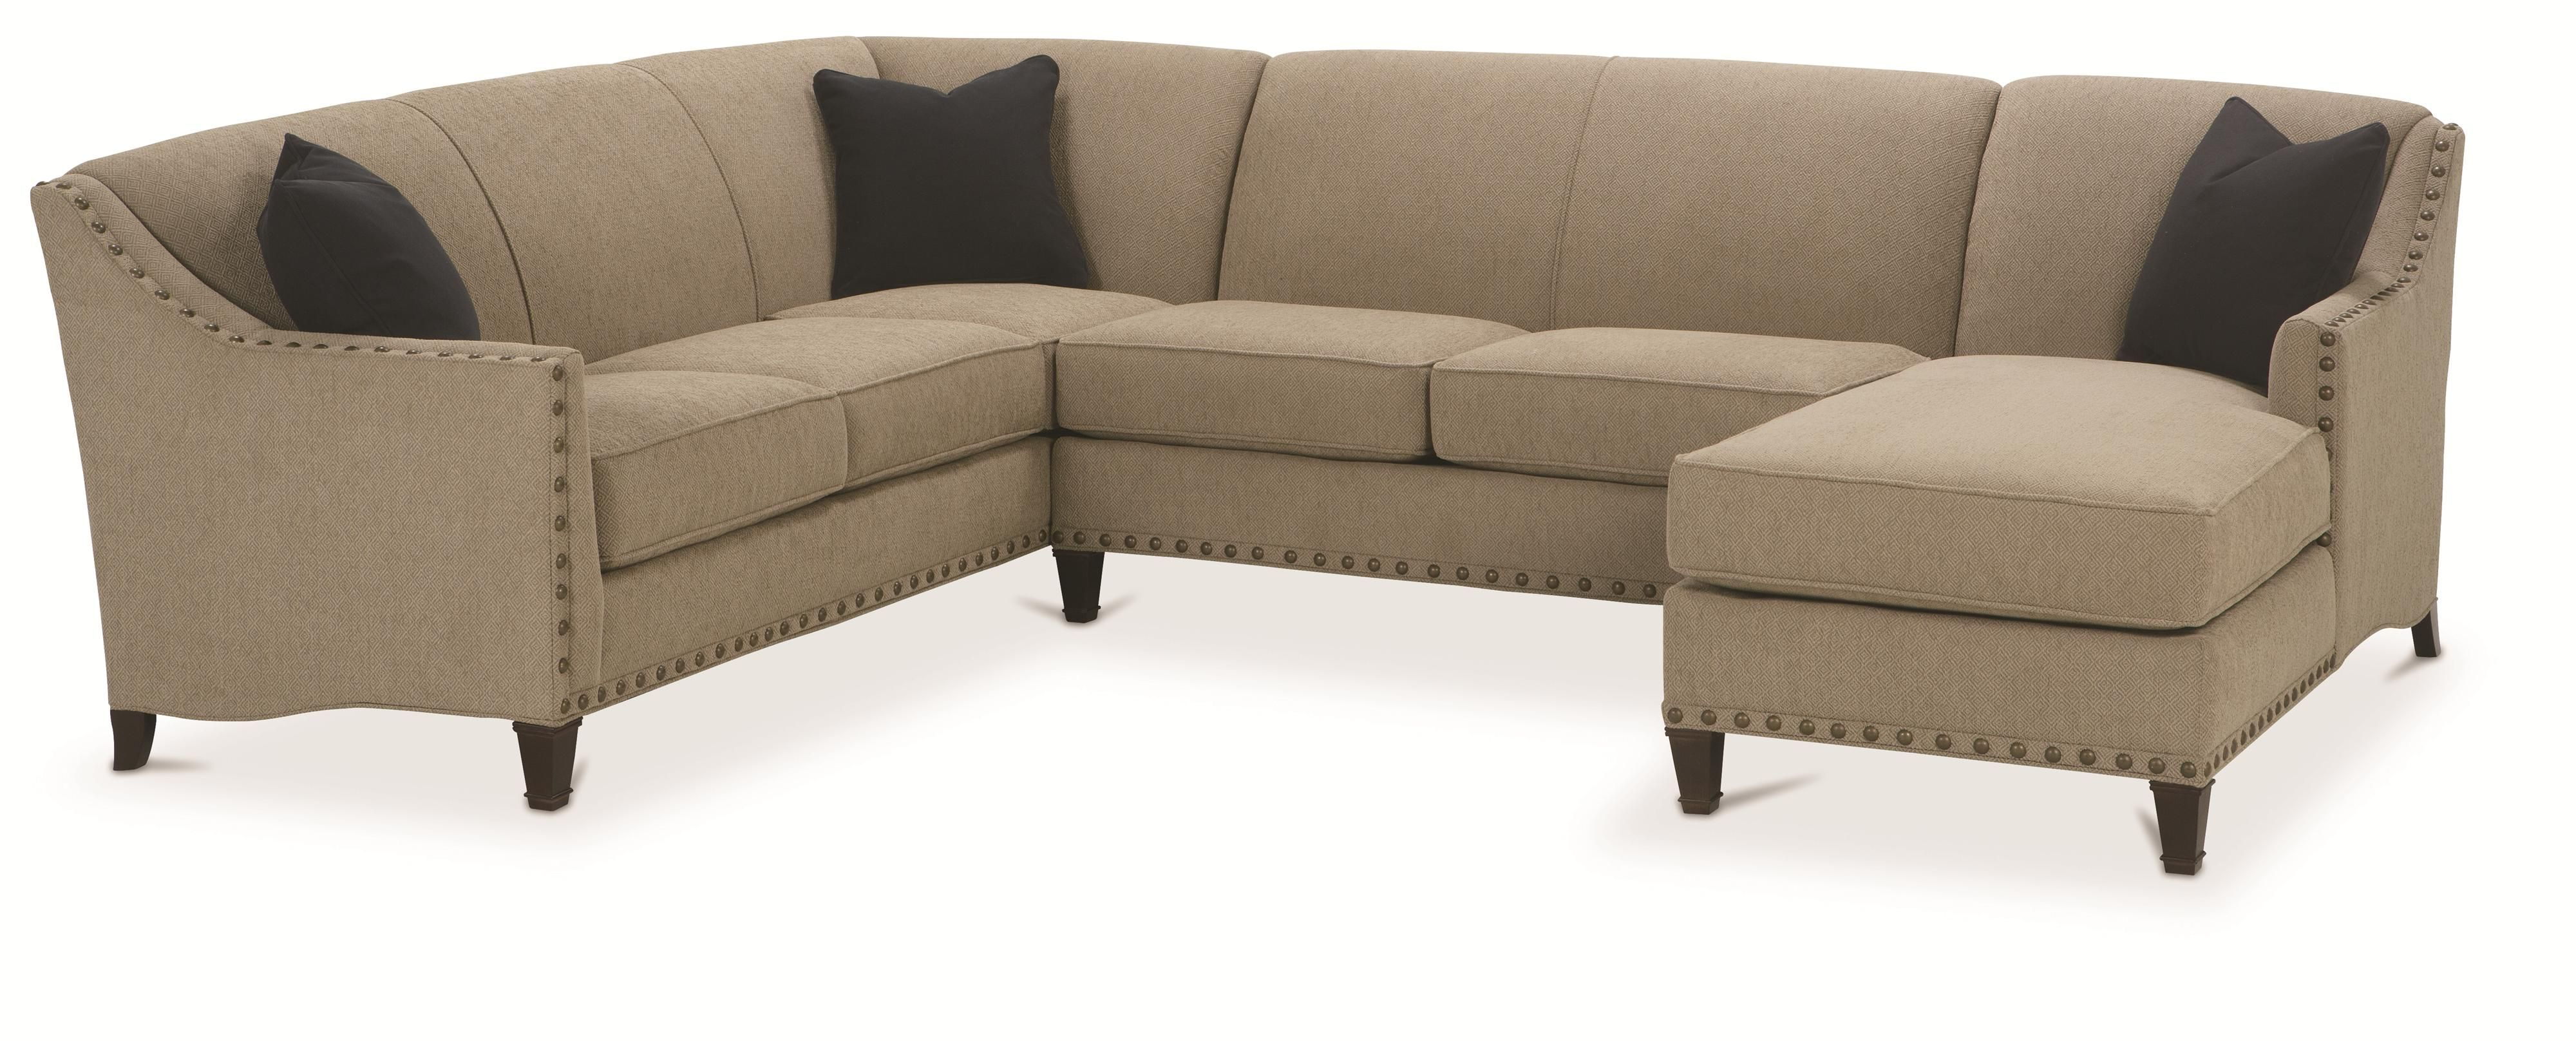 Rockford Traditional 3 Piece Sectional With Chaise By Rowe At Sprintz Furniture Rowe Furniture High Point Furniture Leather Sectional Sofas